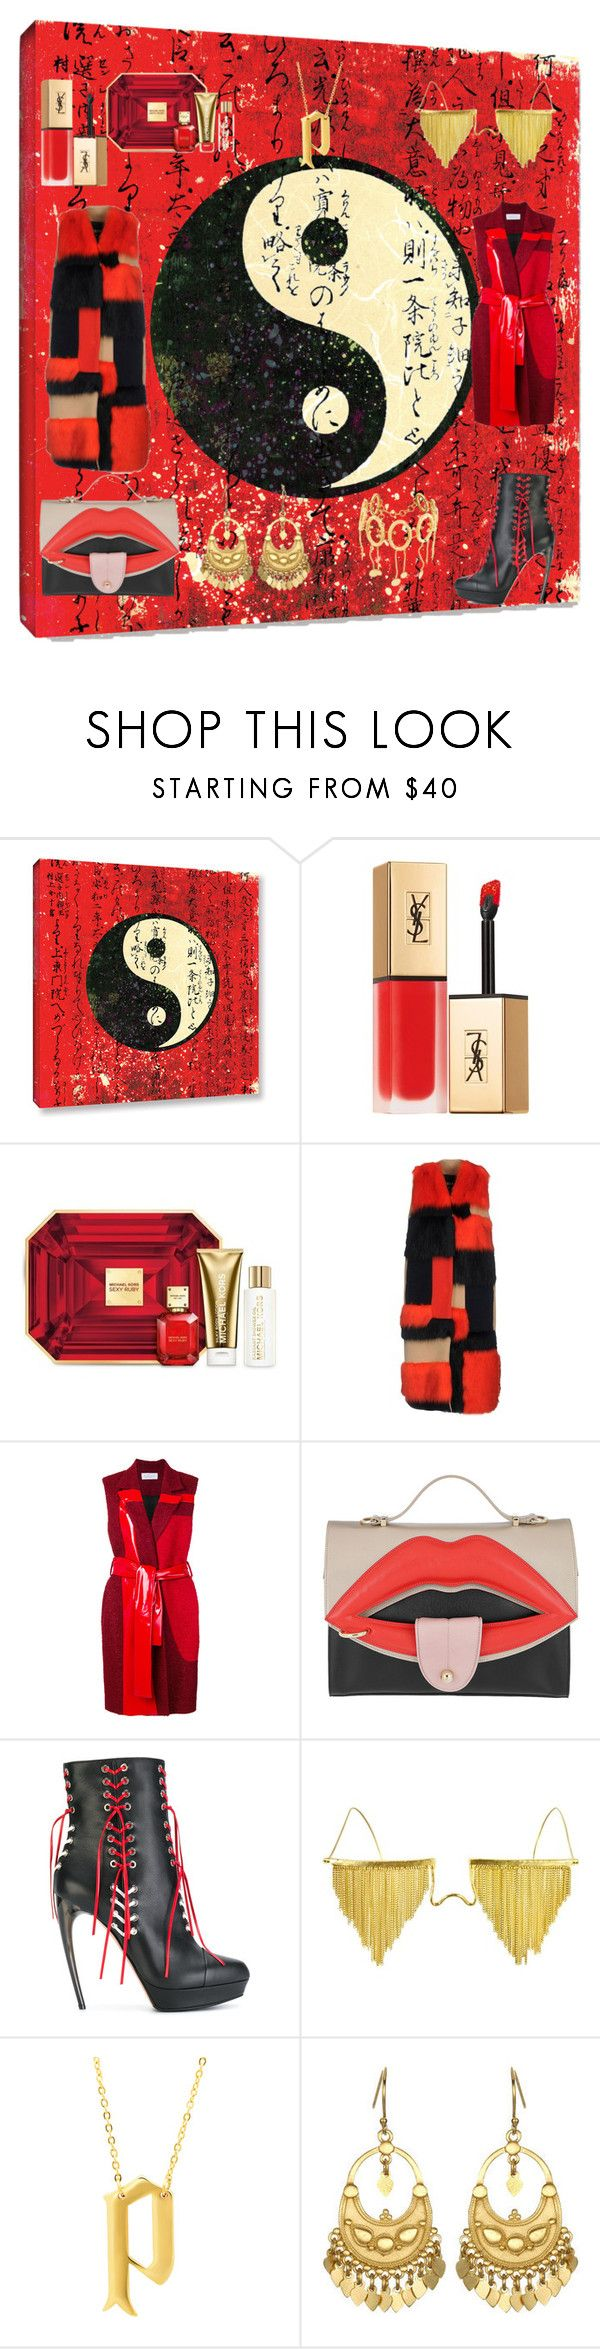 """""""Ying Yang"""" by carmellidesigns ❤ liked on Polyvore featuring Yves Saint Laurent, Michael Kors, MSGM, Gianluca Capannolo, Giancarlo Petriglia, Alexander McQueen, Bjørg, Eklexic, Satya and Paula Mendoza"""